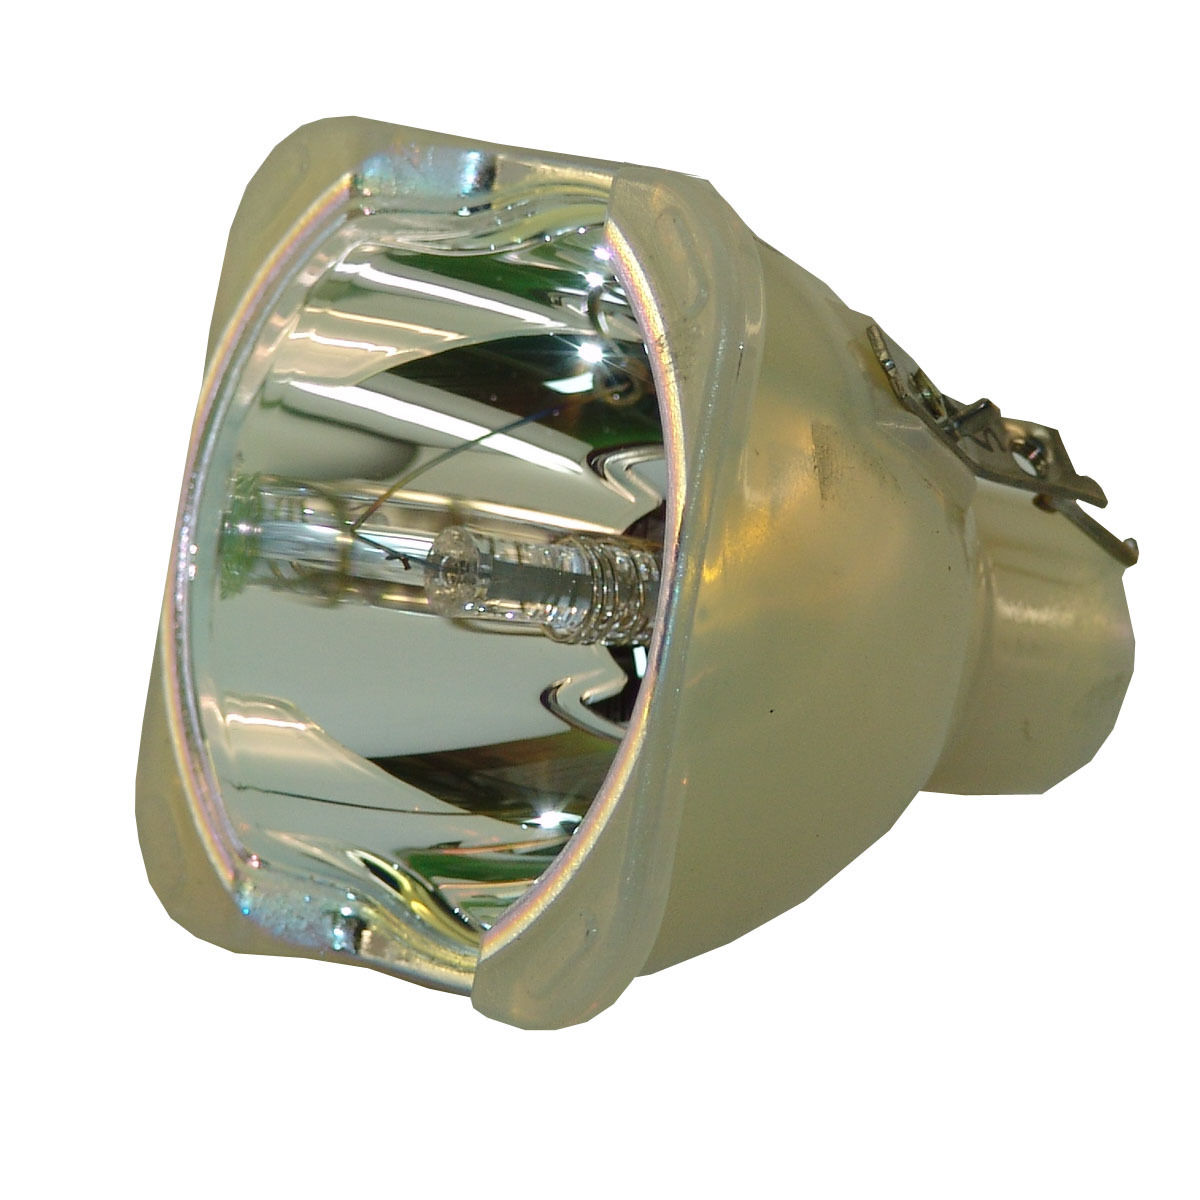 Compatible Bare Bulb BL-FU300A BLFU300A SP.8BH01GC01 for OPTOMA TX1080 EP1080 Projector Lamp Bulb without housing compatible bare bulb for optoma bl fu180b projector lamp